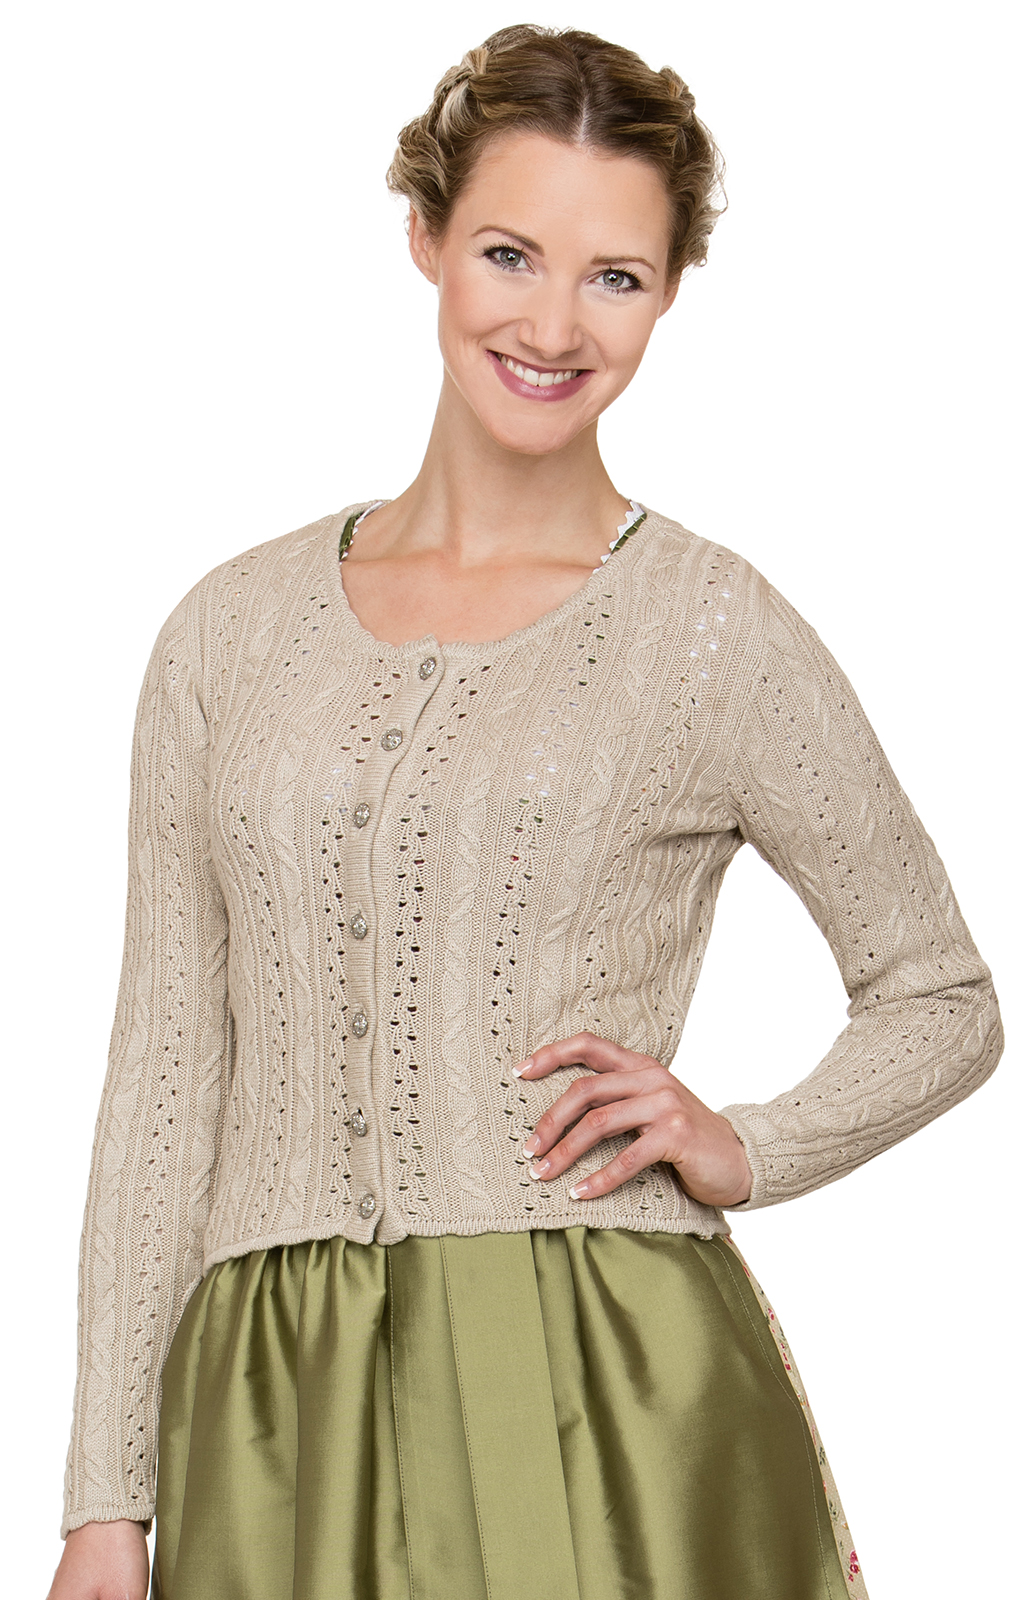 Strickjacke LIZ natur von Stockerpoint